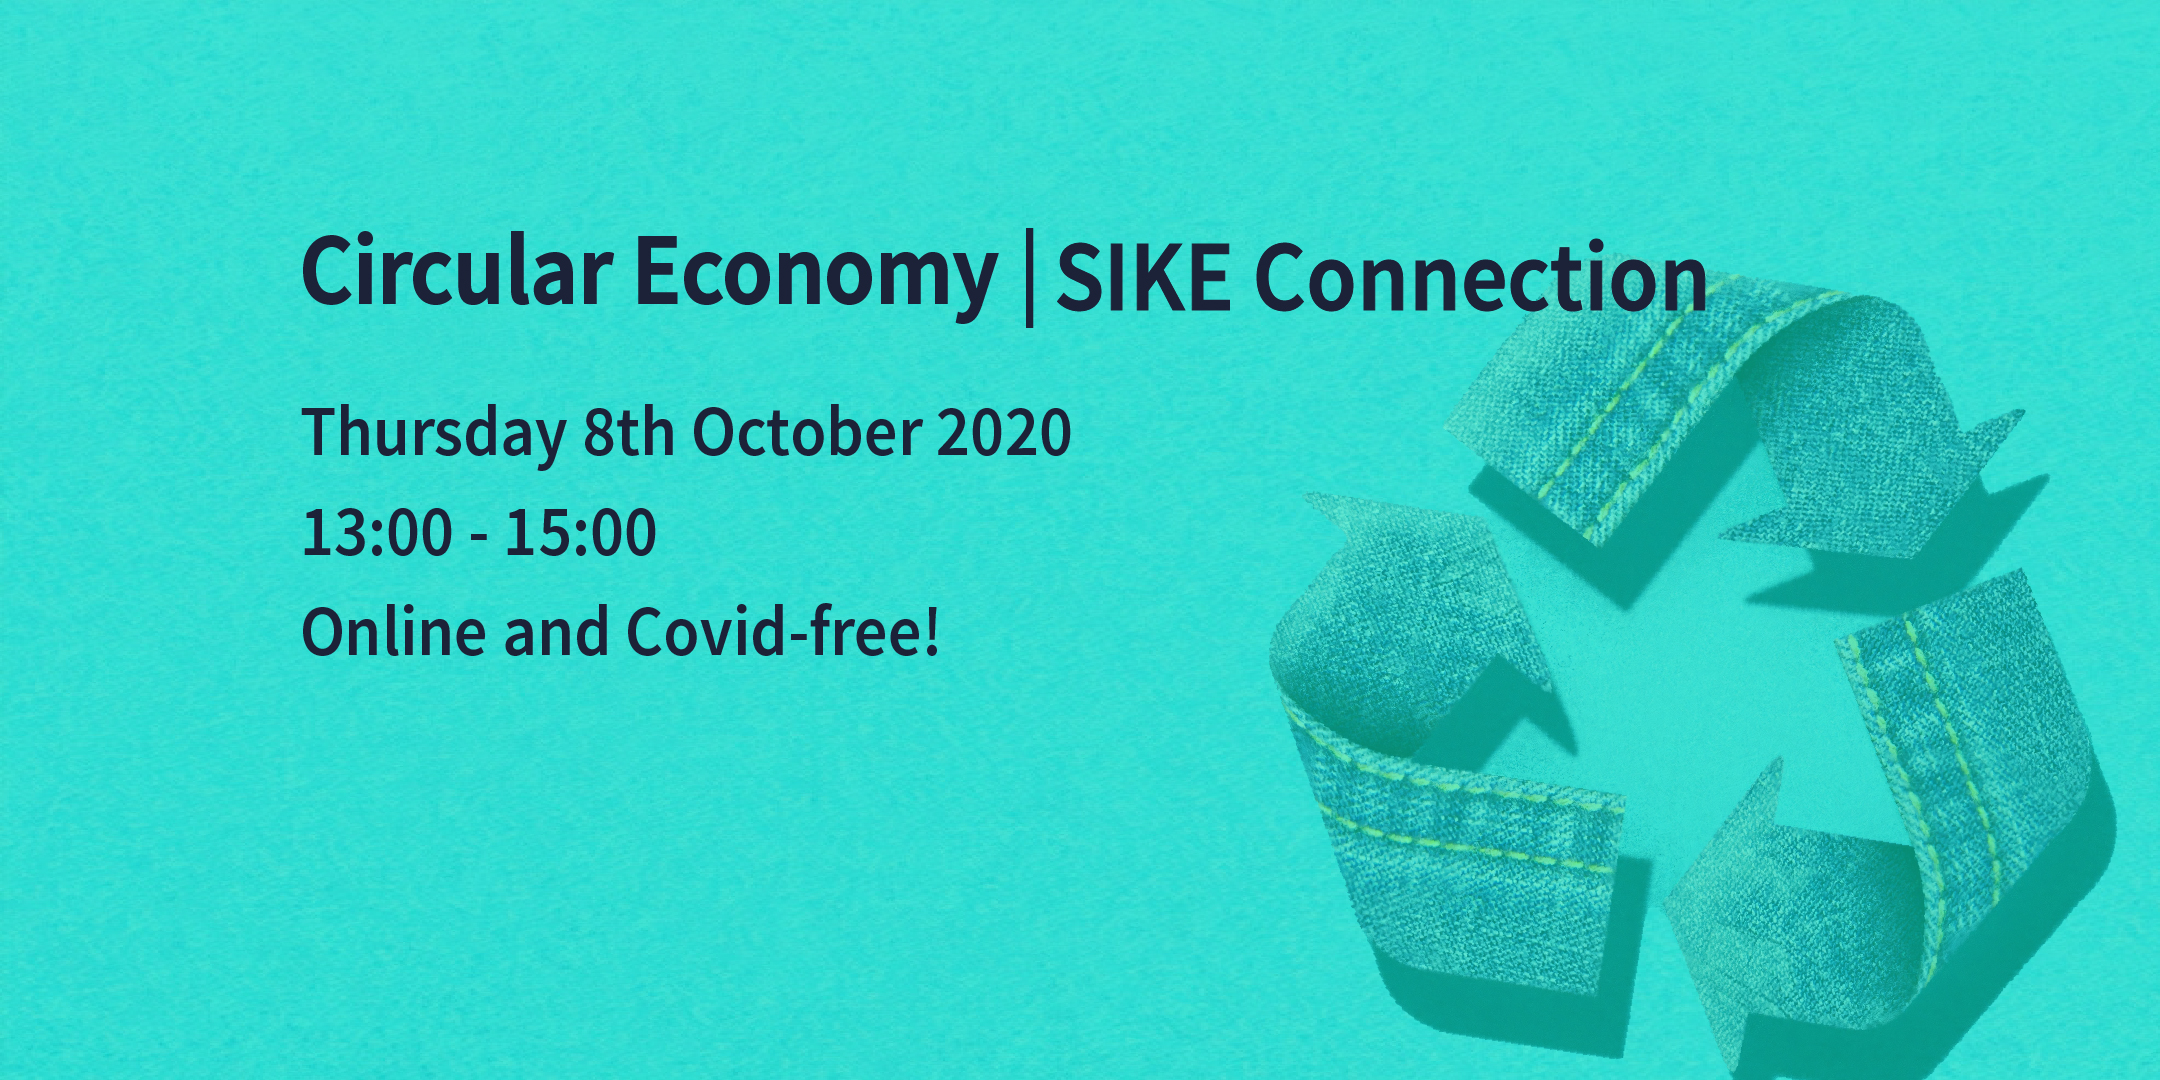 SIKE Connection | Circular Economy